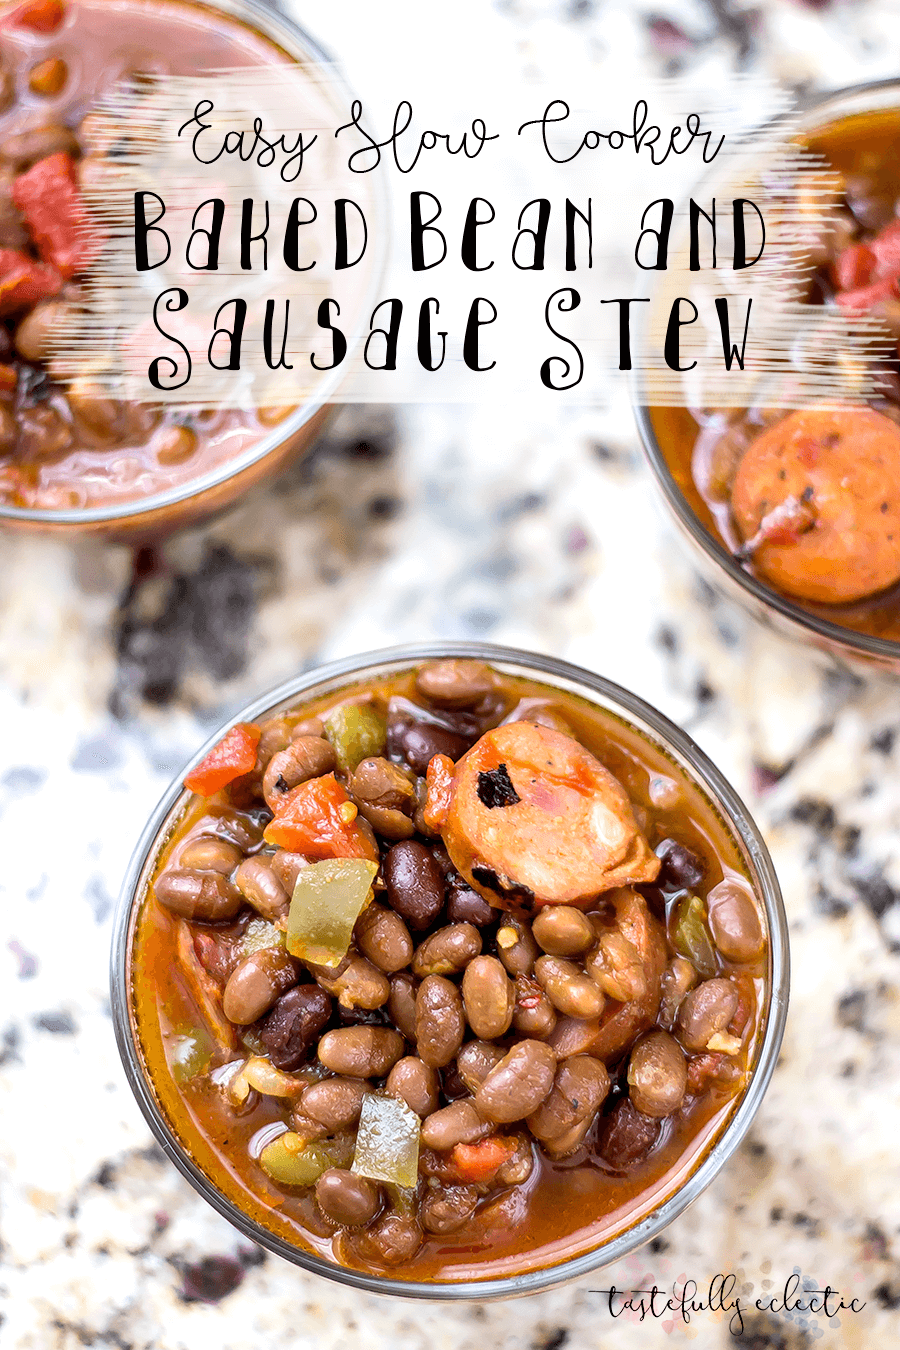 Easy Slow Cooker Baked Bean and Sausage Stew